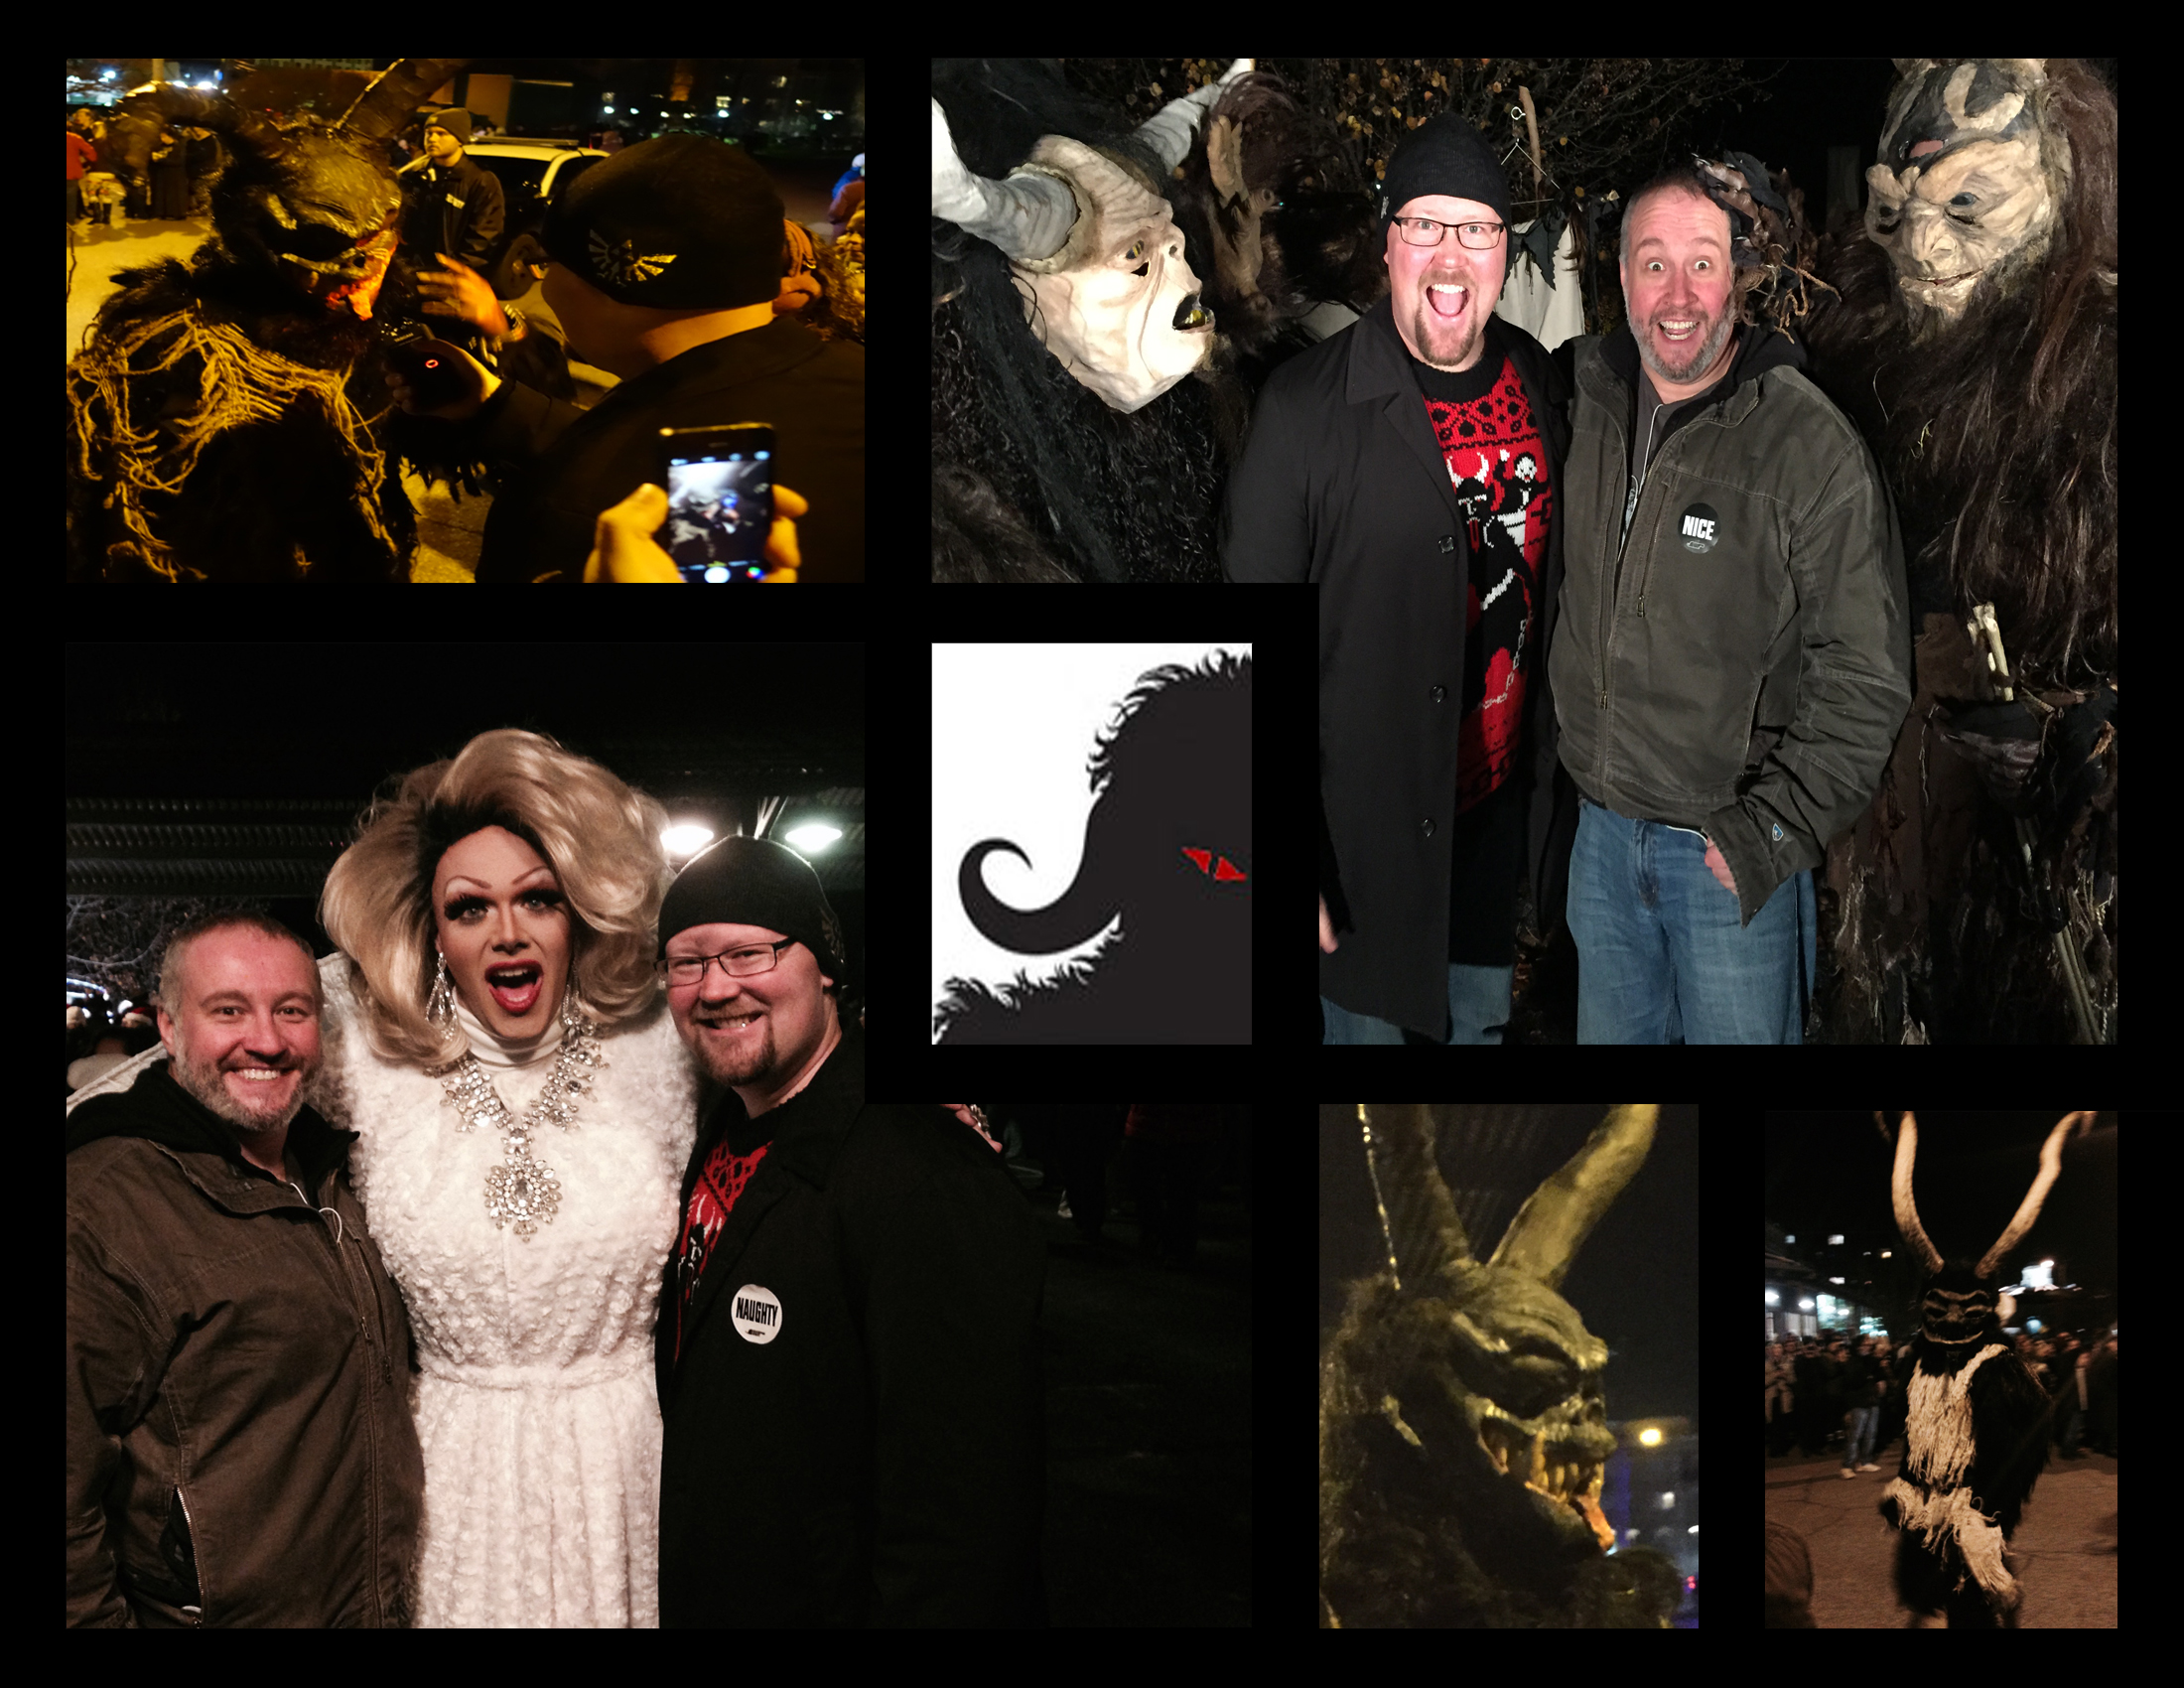 2015 Bloomington Krampusnacht